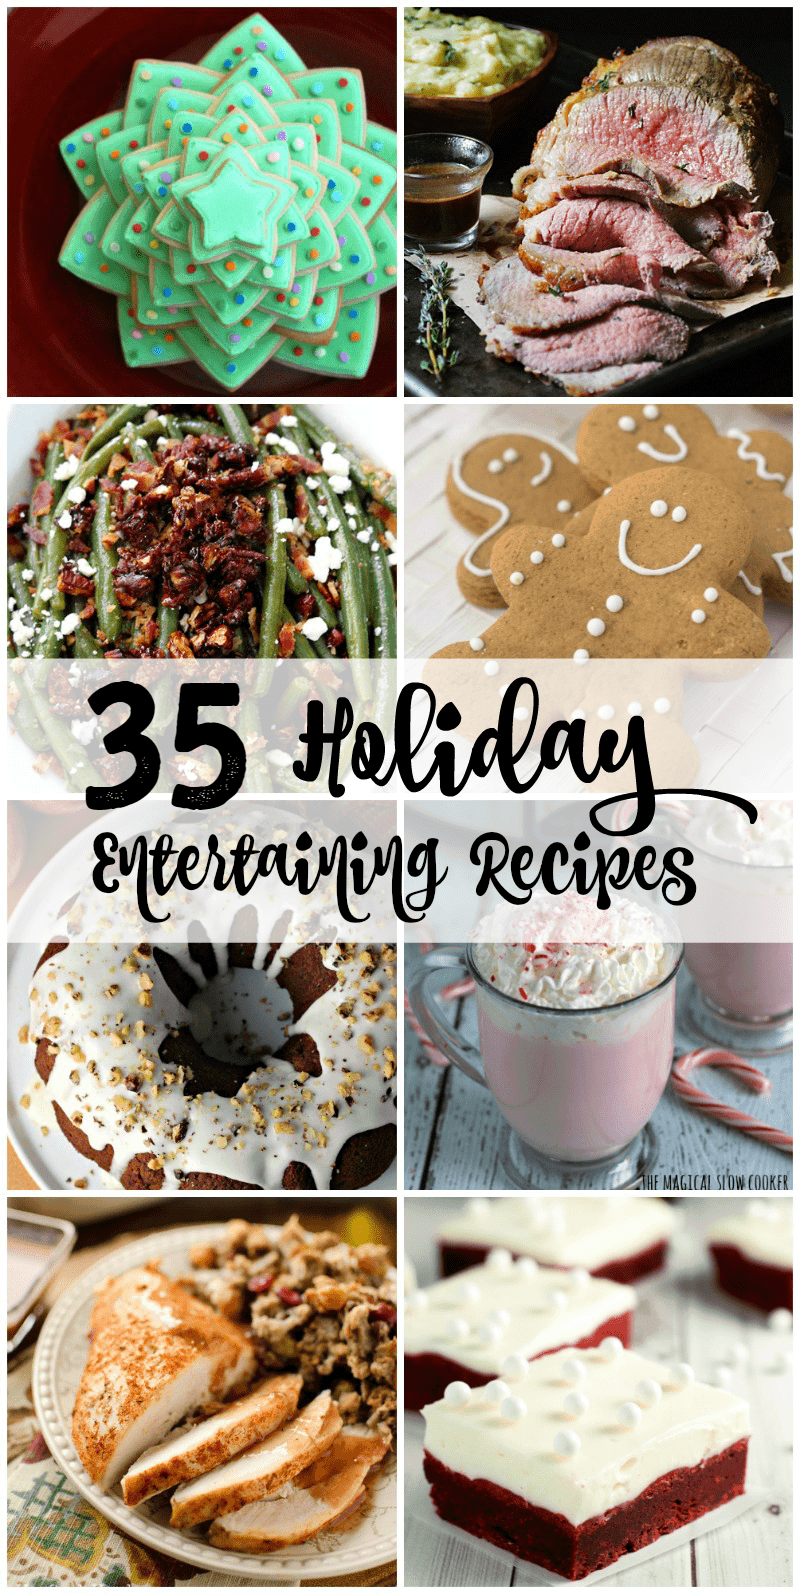 Holiday entertaining doesn't have to be stressful! Here are 35 recipes for holiday entertaining - everything you need to entertain guests for Thanksgiving ANDChristmas!